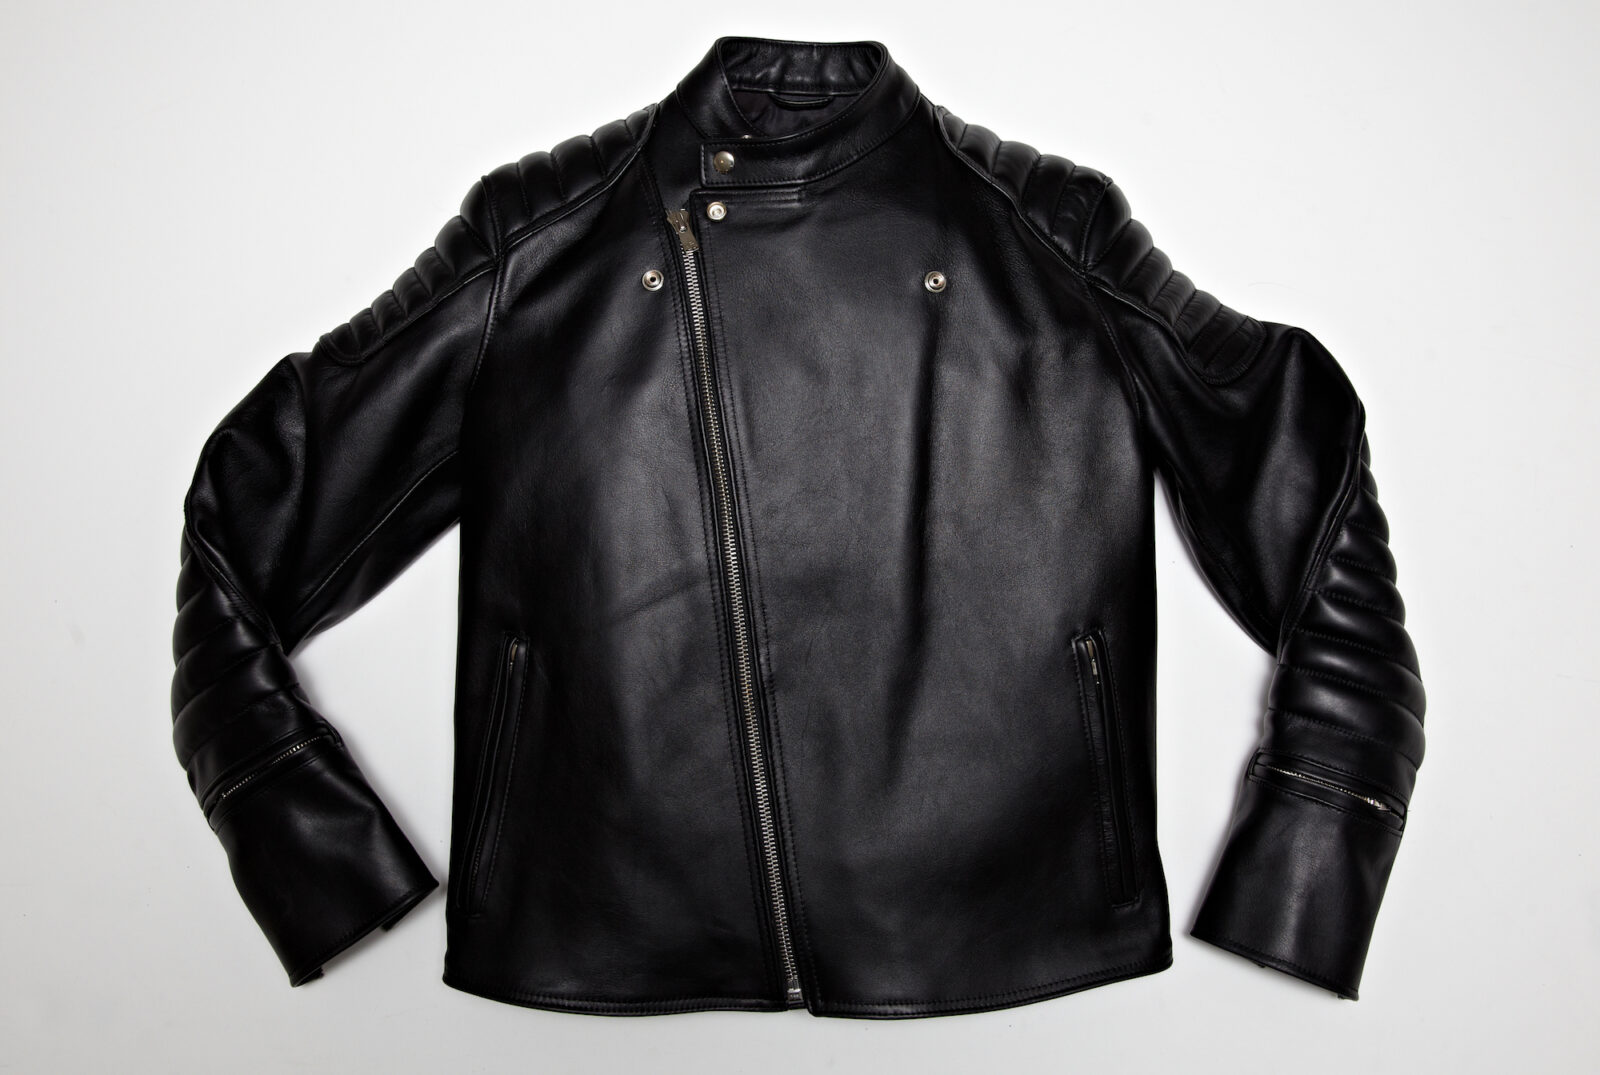 Wythe Motorcycle Jacket 1600x1075 - The Wythe Motorcycle Jacket